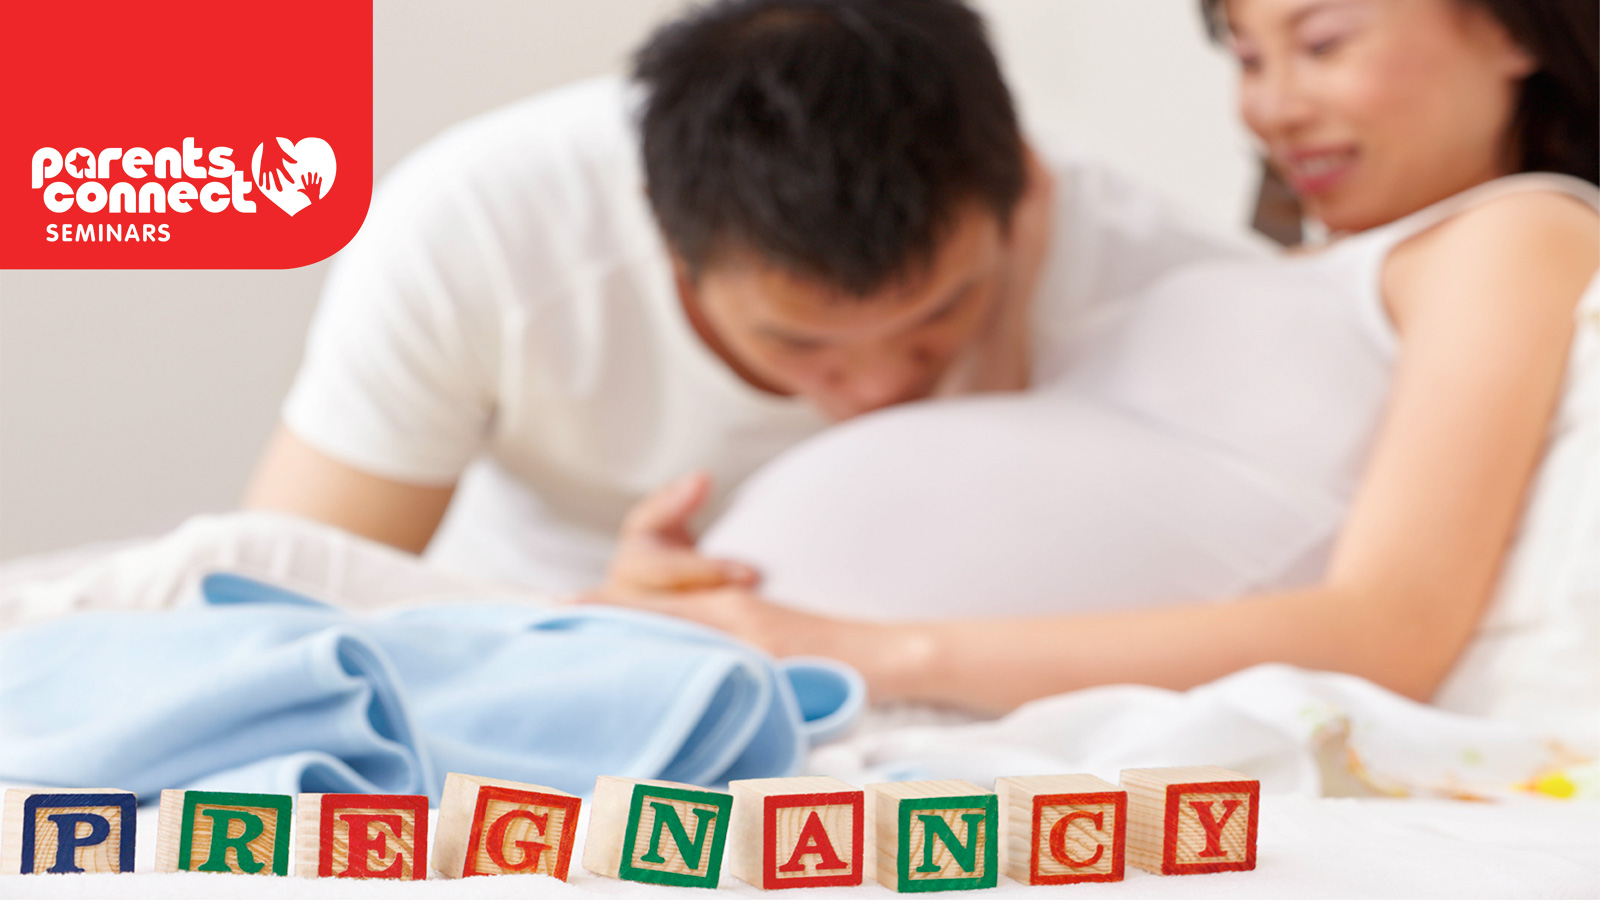 From bump to birth ― a healthy pregnancy starts with you!